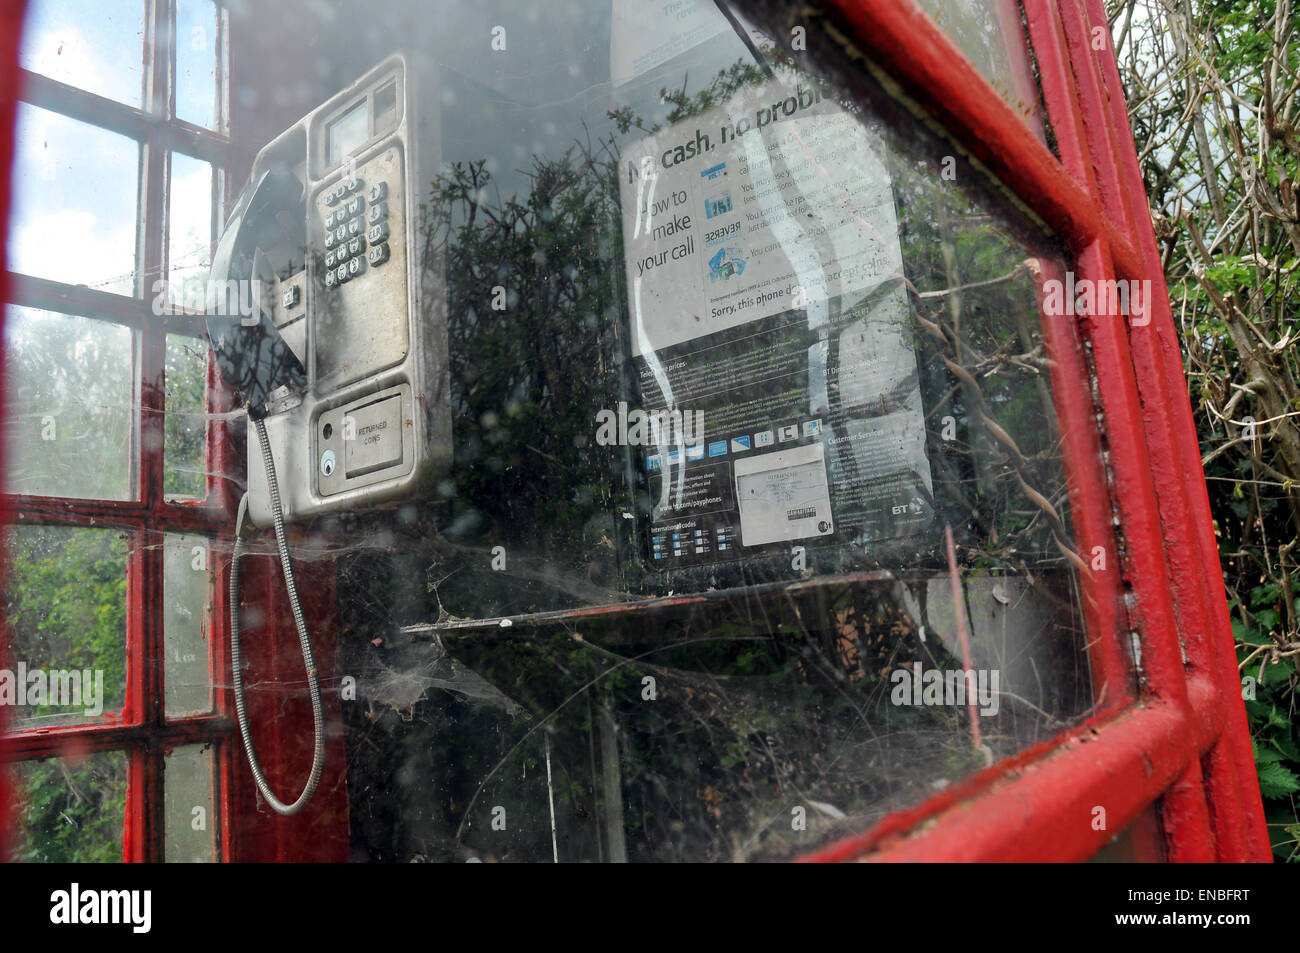 An old telephone box. - Stock Image